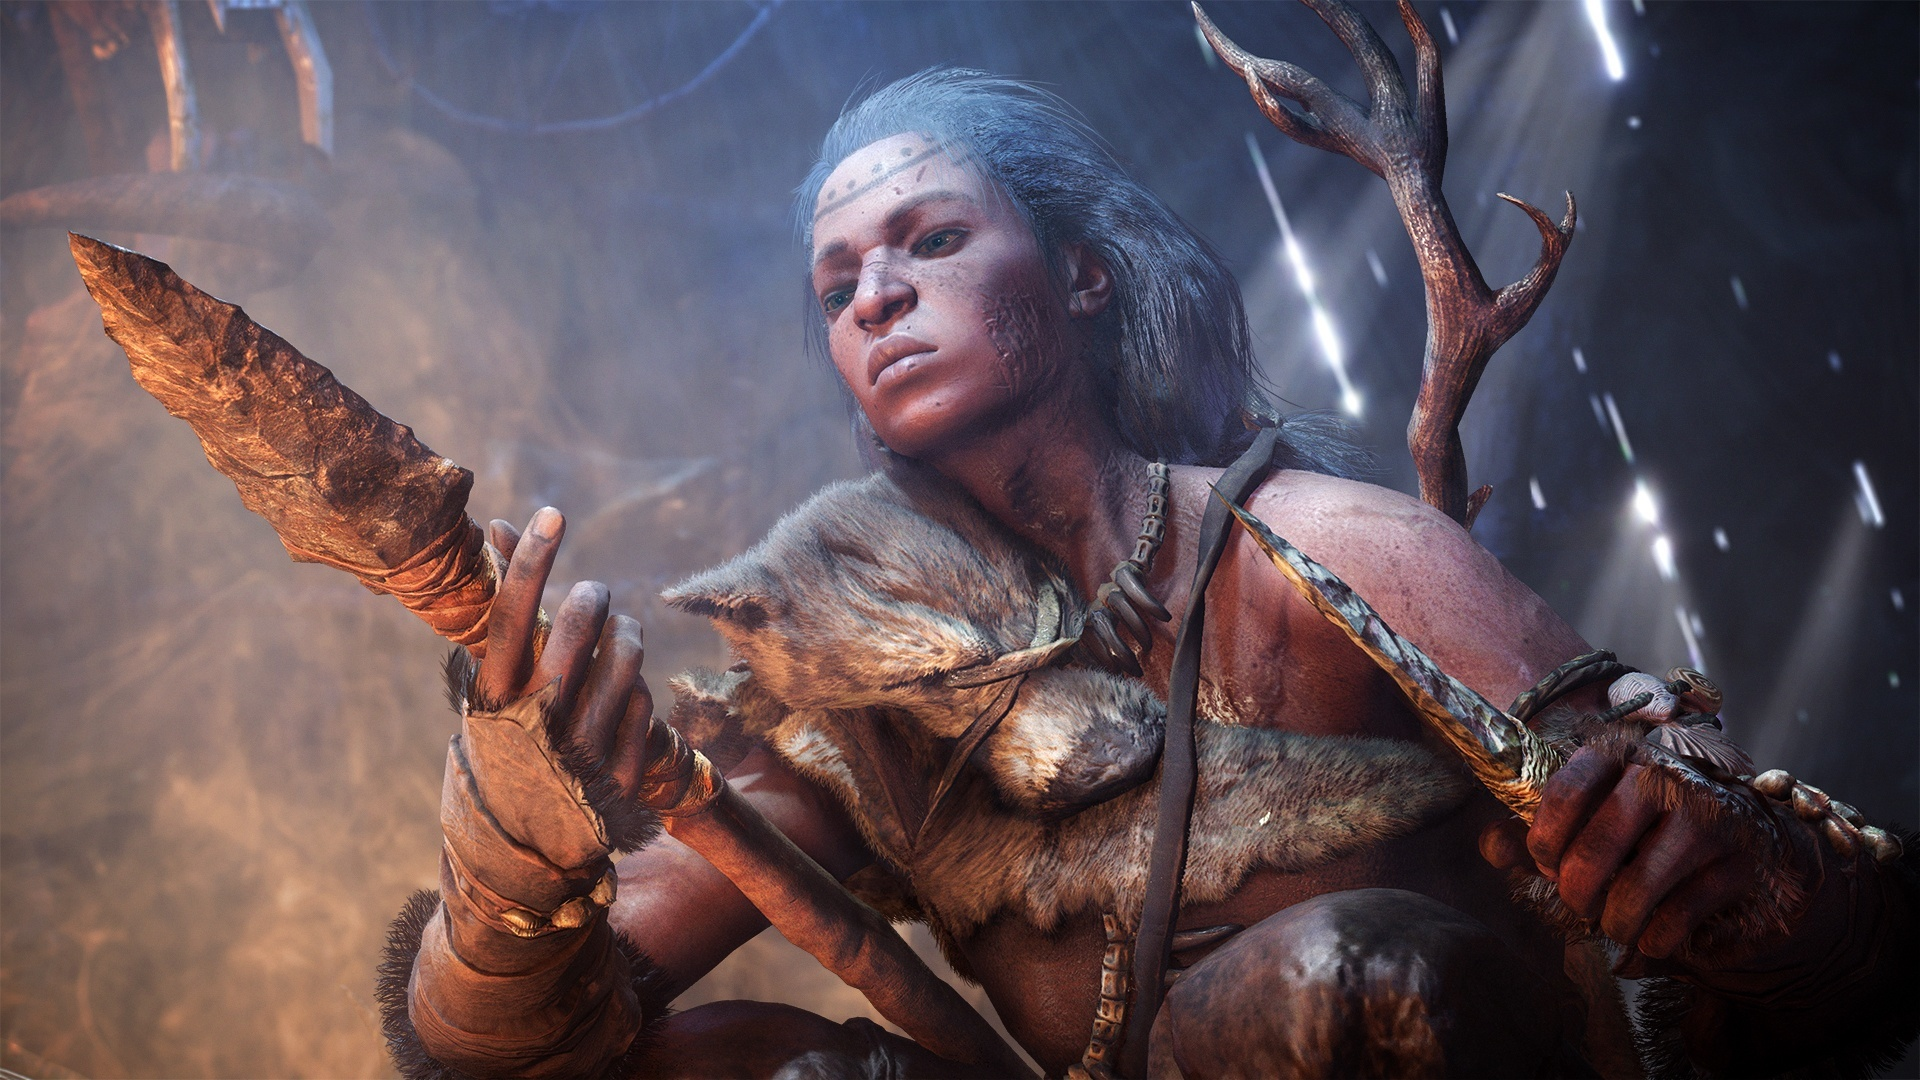 far cry primal free download for pc full version with crack